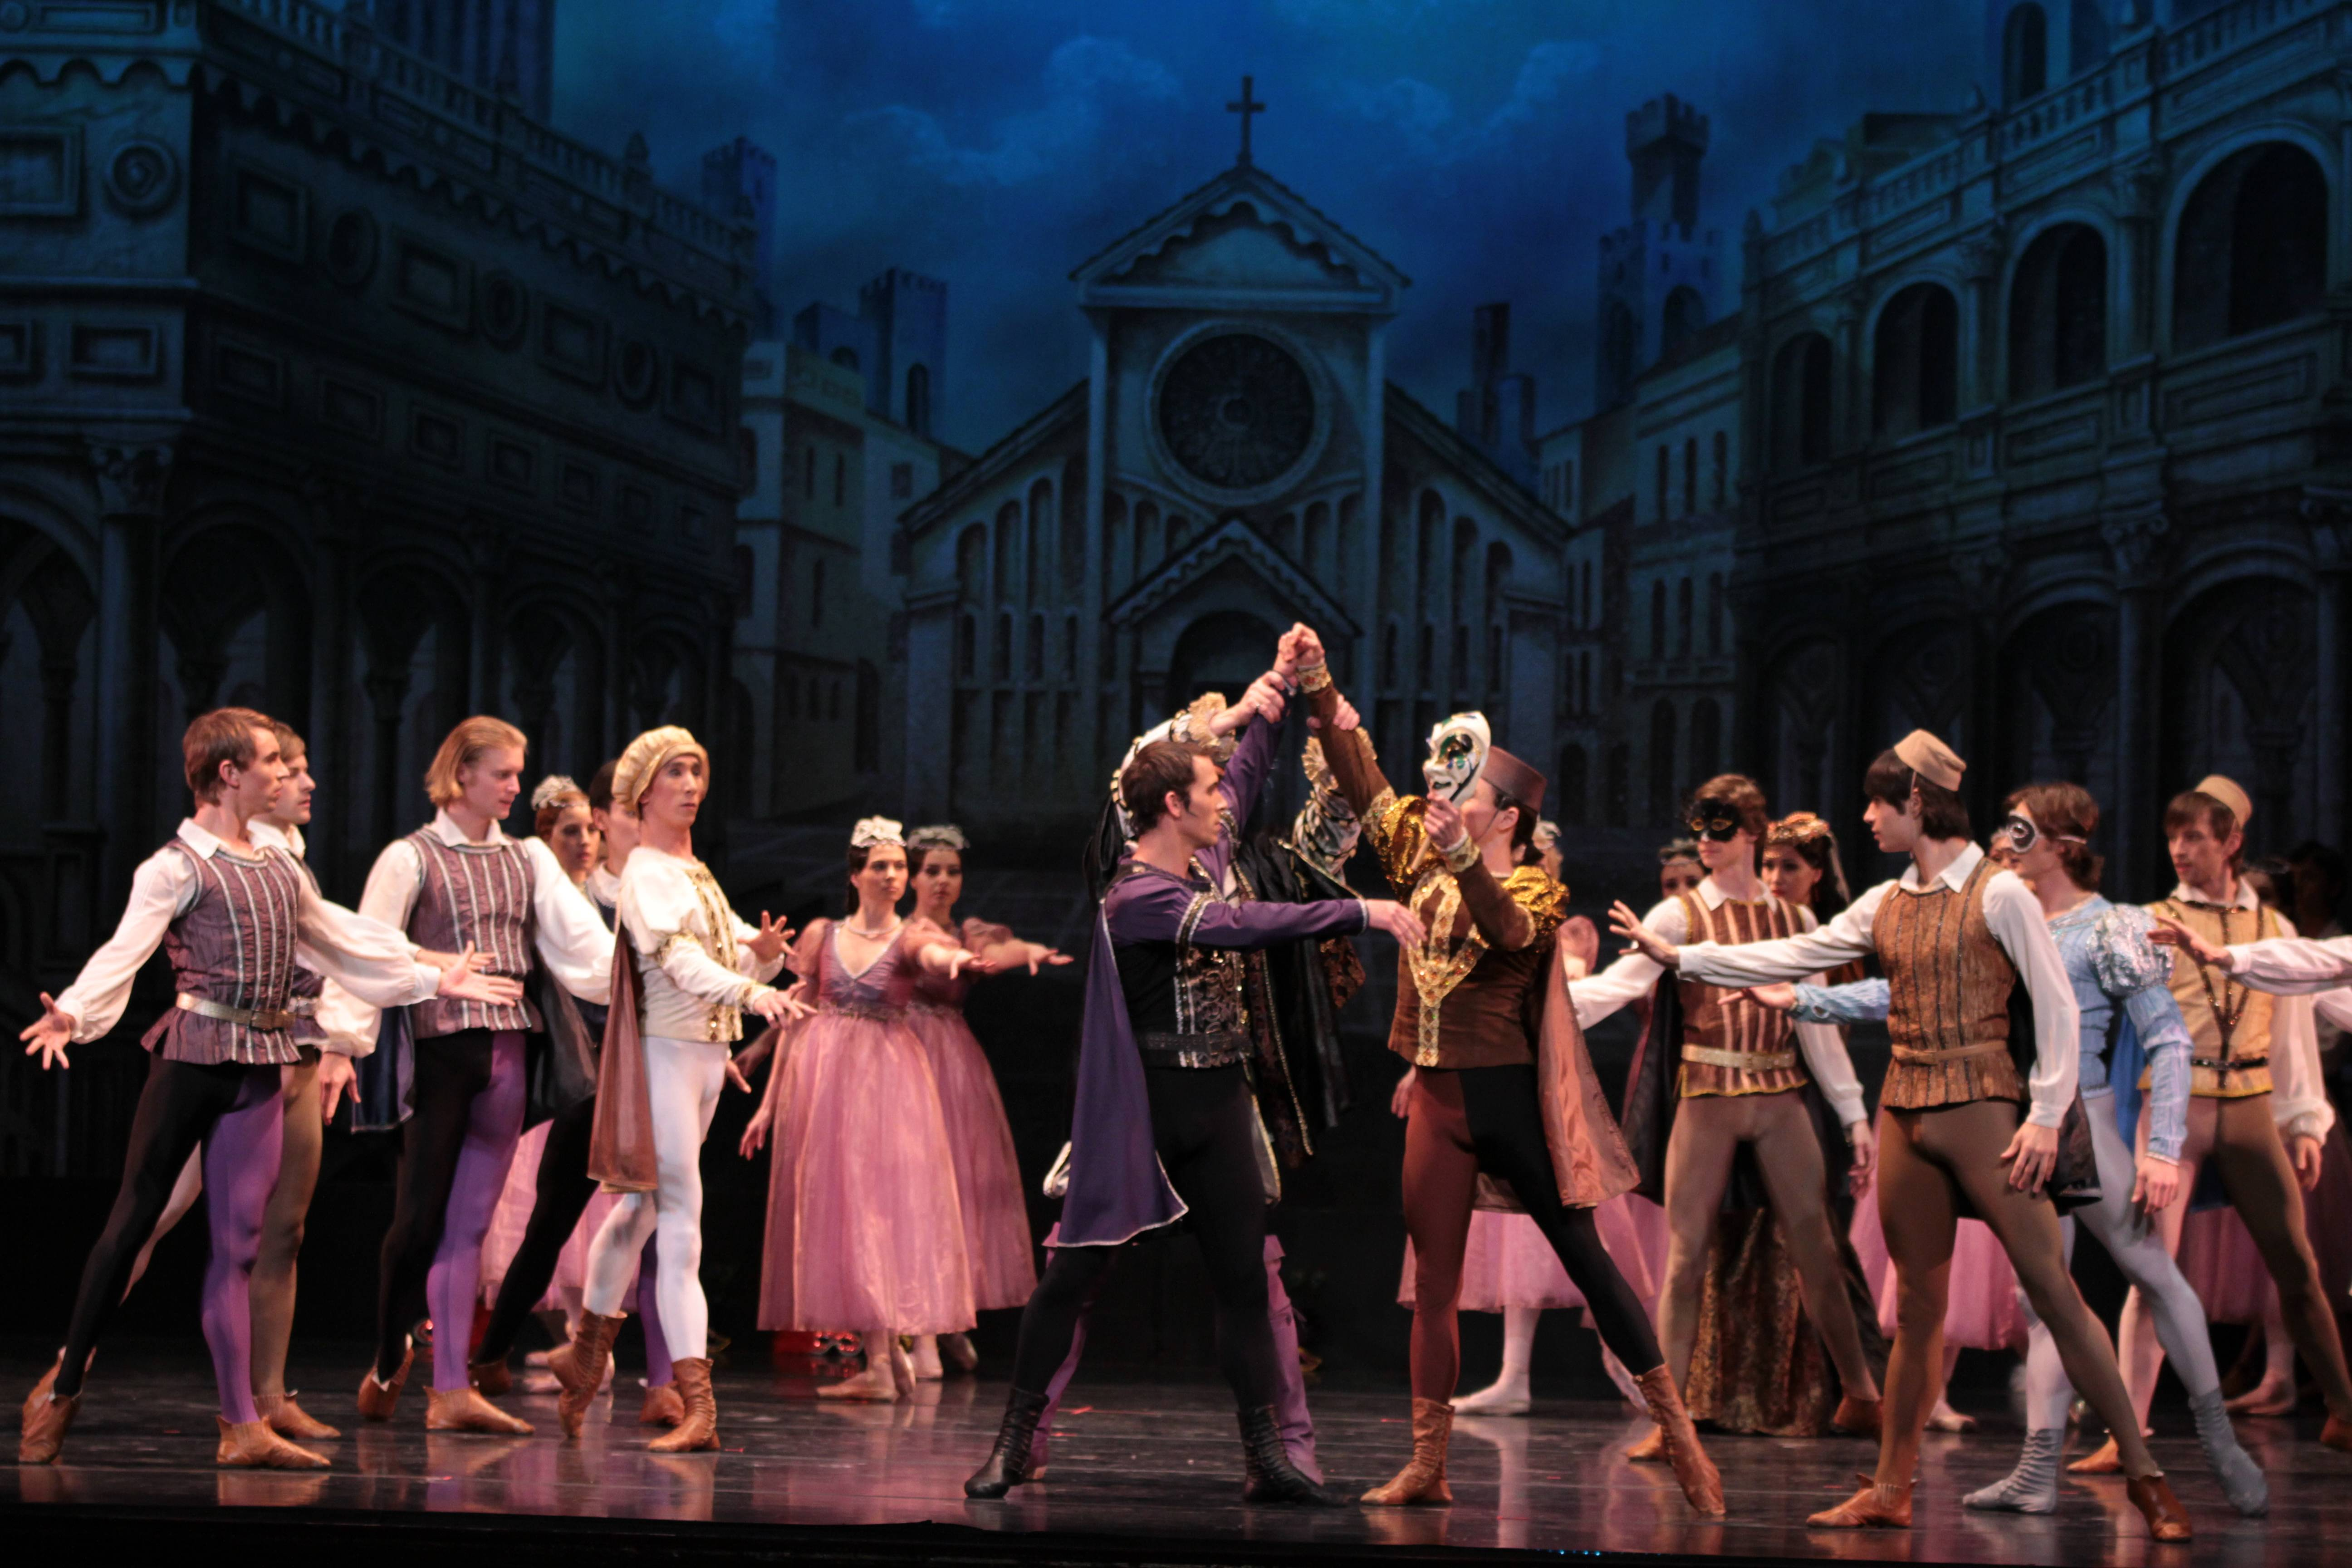 """Romeo and Juliet,"" ""Carmen Suite"" and ""Chopiniana"" will be presented by the Russian National Ballet Theatre at 8 p.m. on Saturday, May 5 at Pfeiffer Hall in Naperville. Courtesy of the Russian National Ballet Theatre"